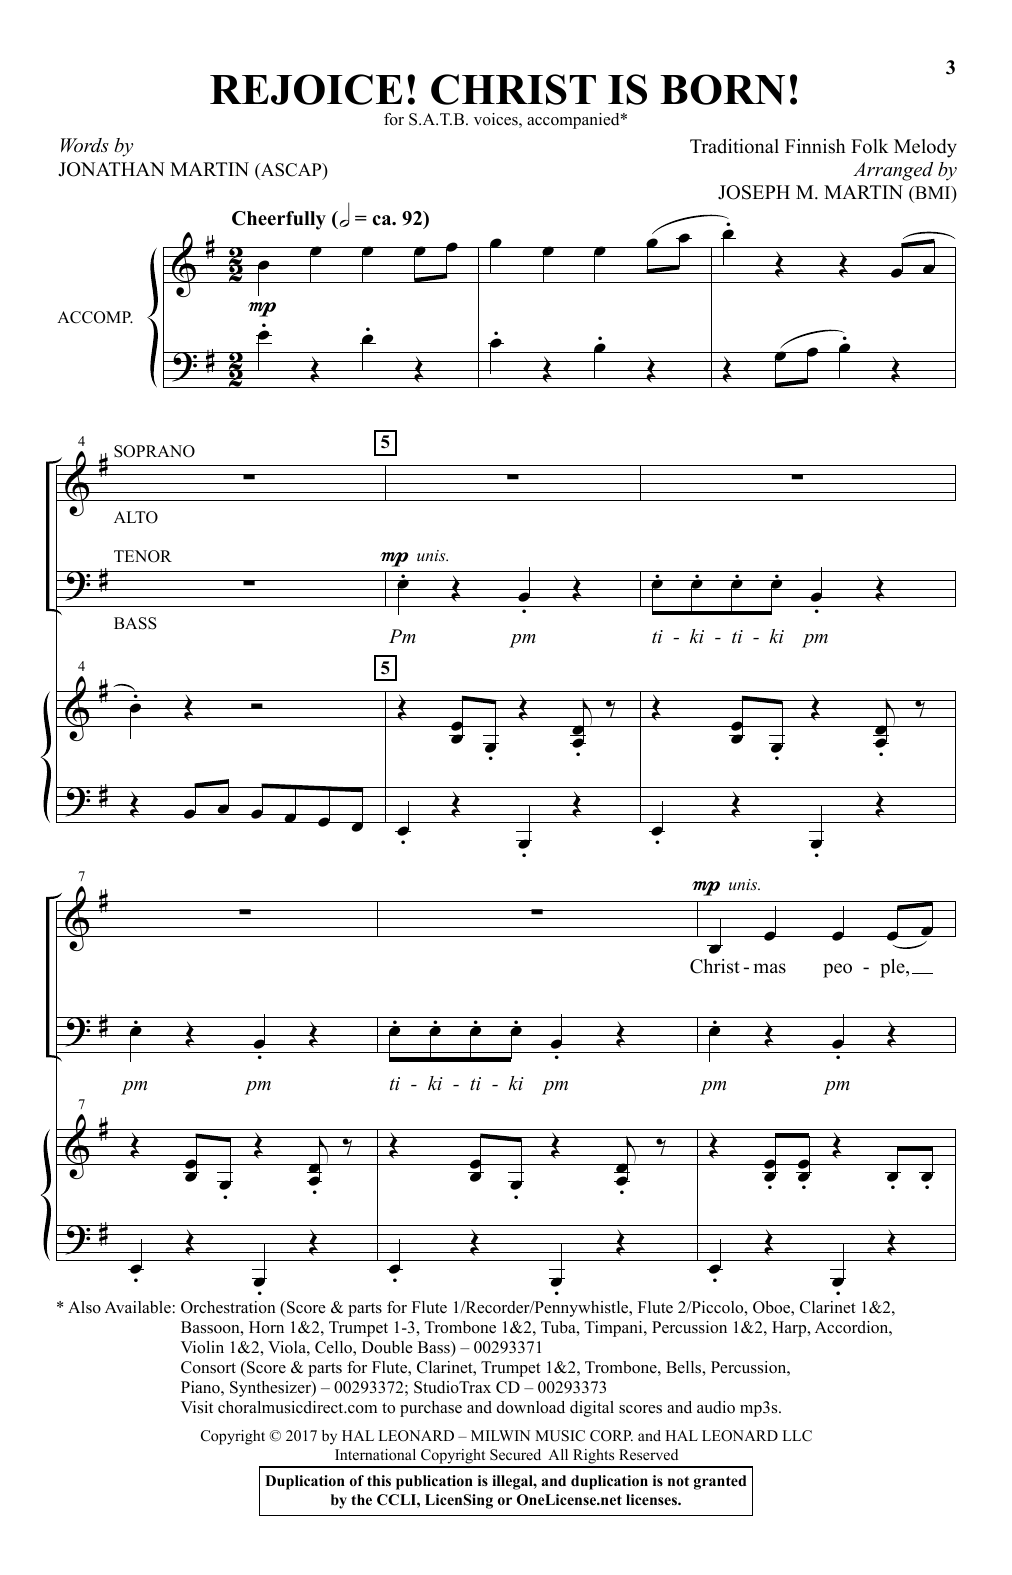 photograph about Printable Christmas Sheet Music named Jonathan Martin Celebrate! Christ Is Born! Sheet Songs Notes, Chords  Obtain Printable SATB Choir - SKU: 411045